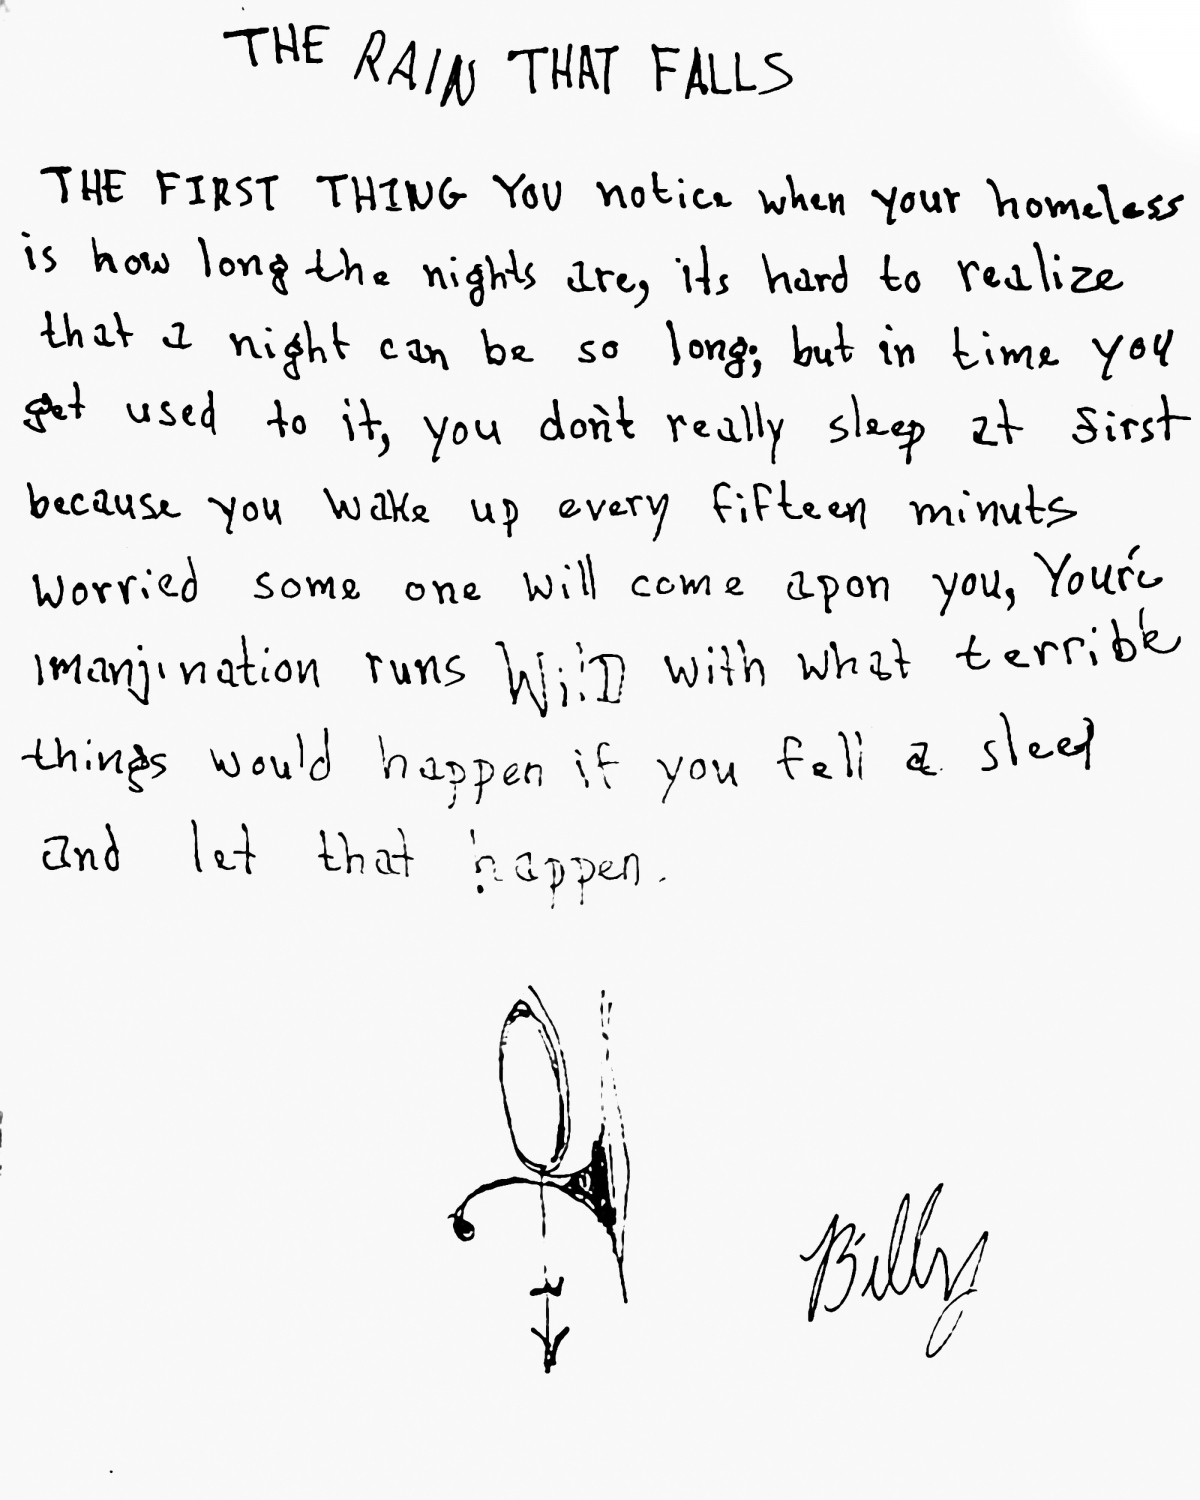 A letter from Billy. Billy is a homeless man who wanders around Colfax Avenue, asking people for money in exchange for a poetry reading. This letter from Billy consists of the first paragraph of his piece 'The Rain That Falls'.